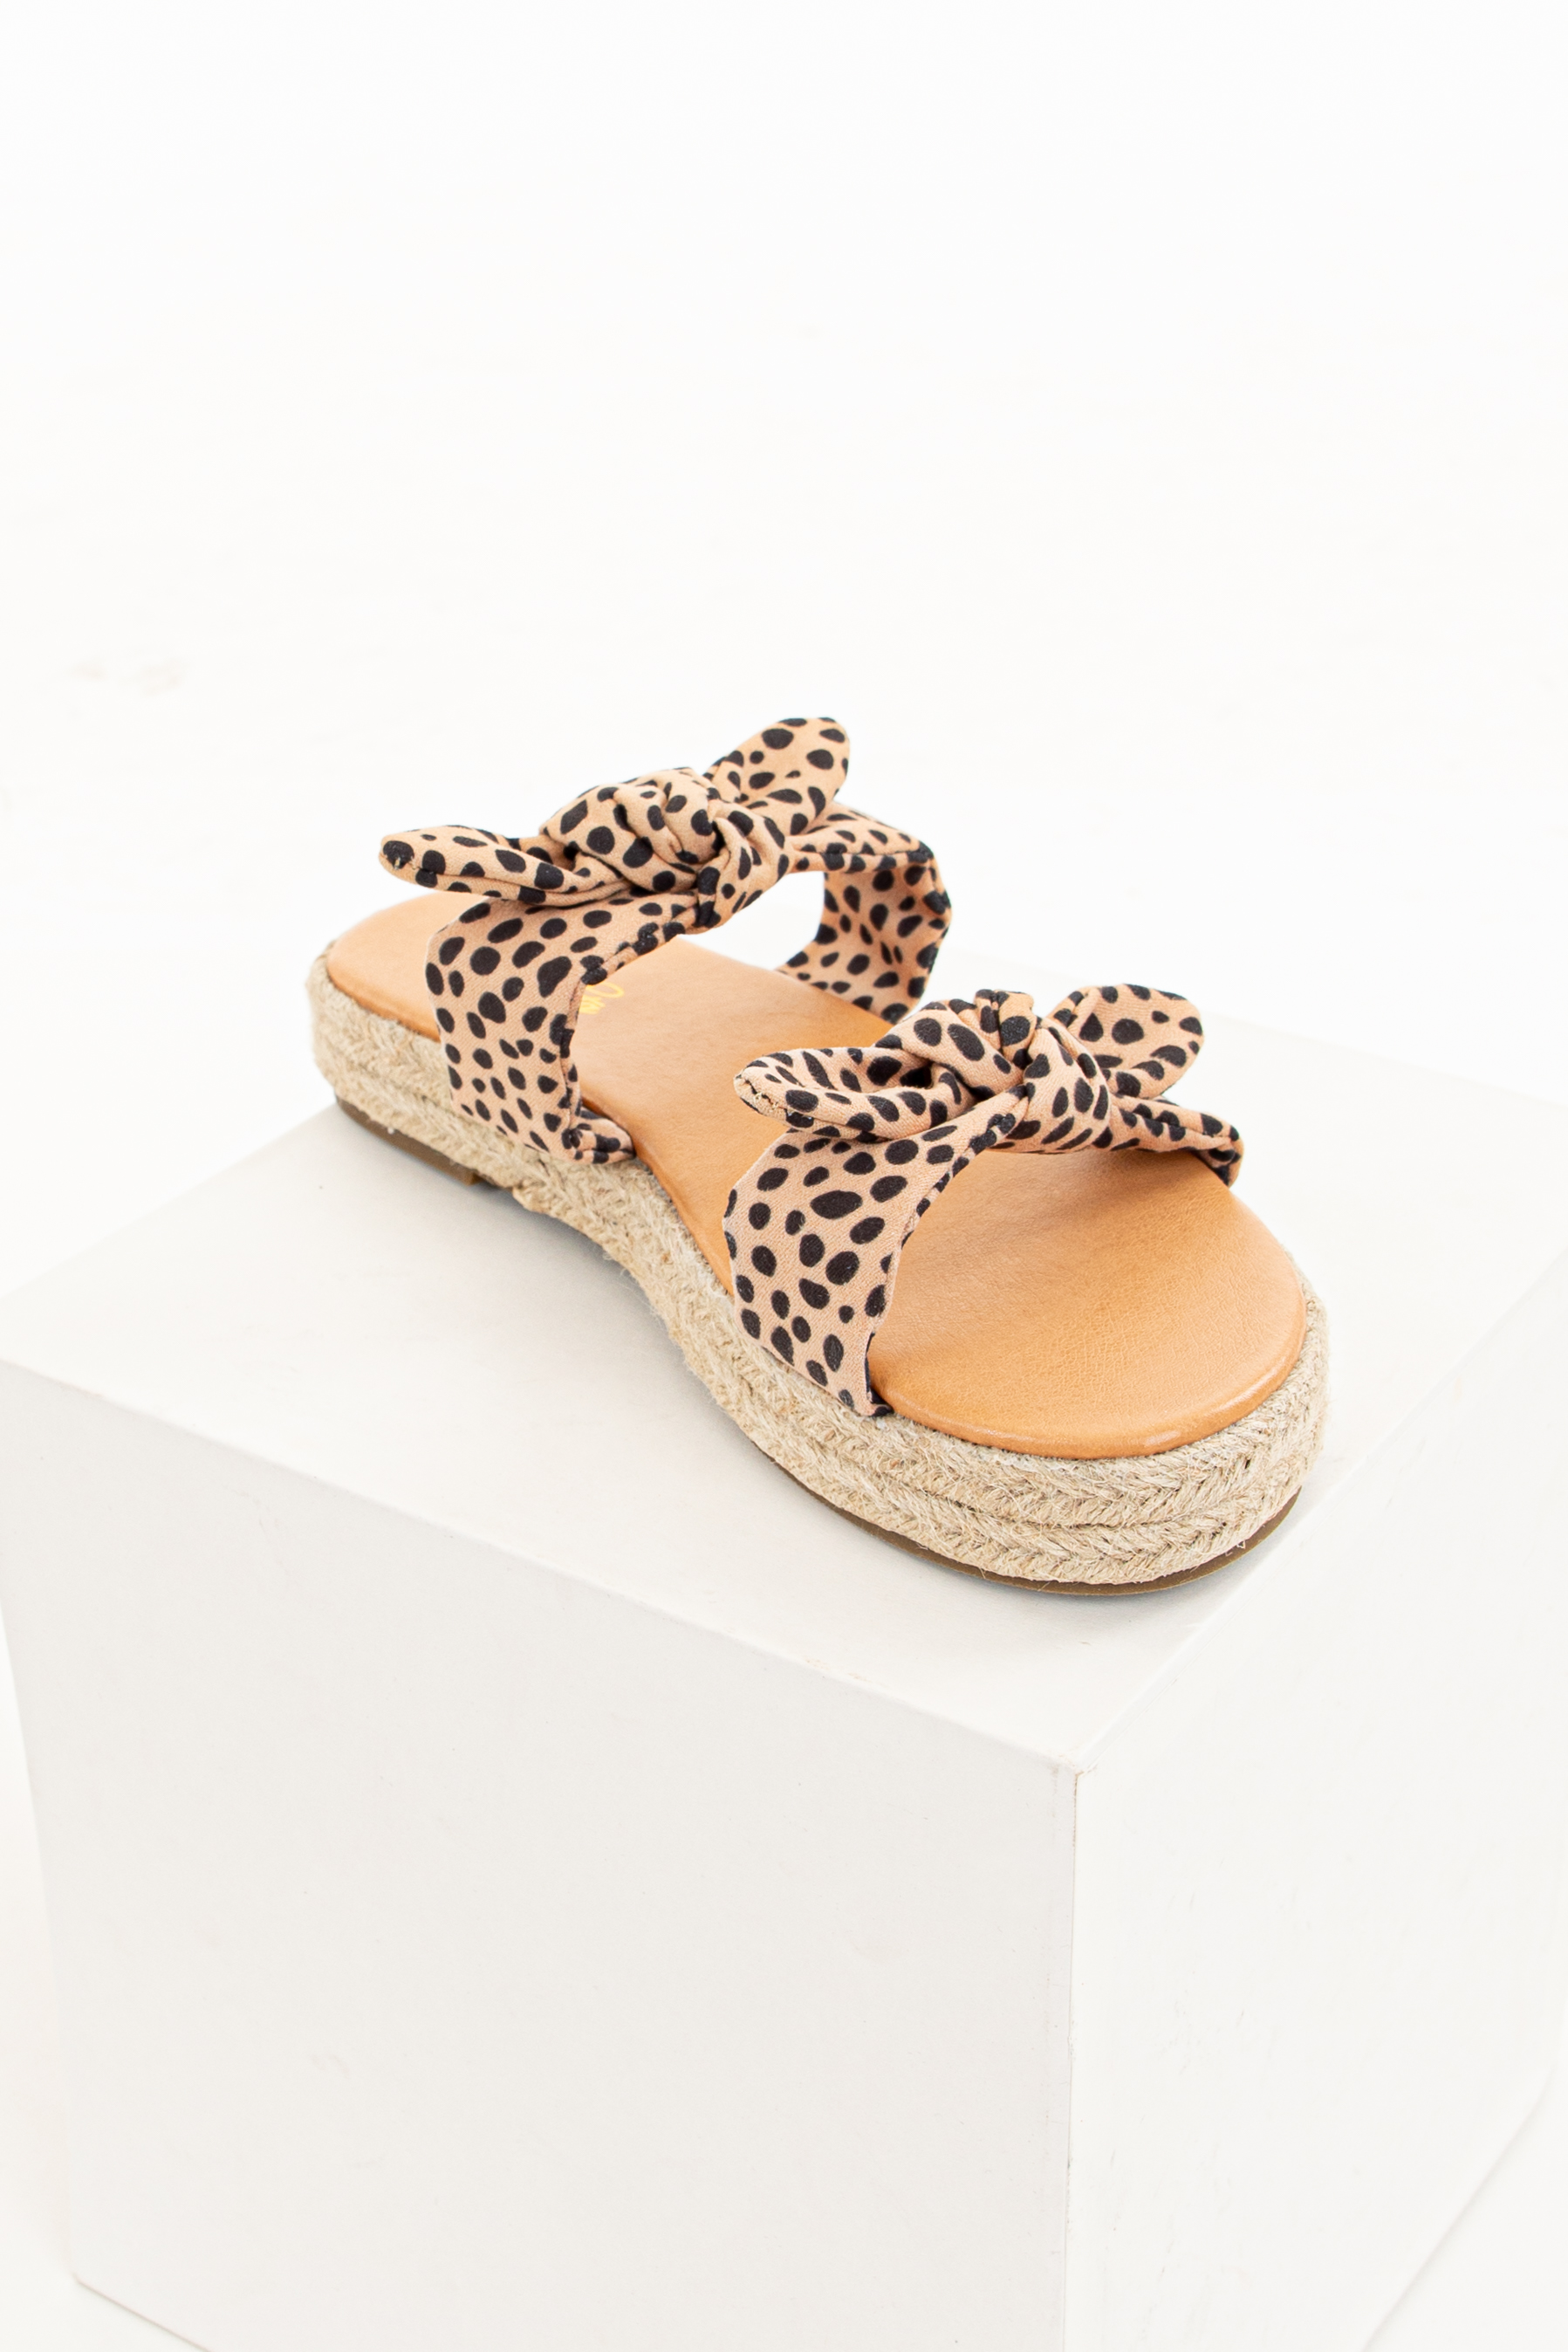 Tan Cheetah Print Double Strap Espadrille Sandals with Ties